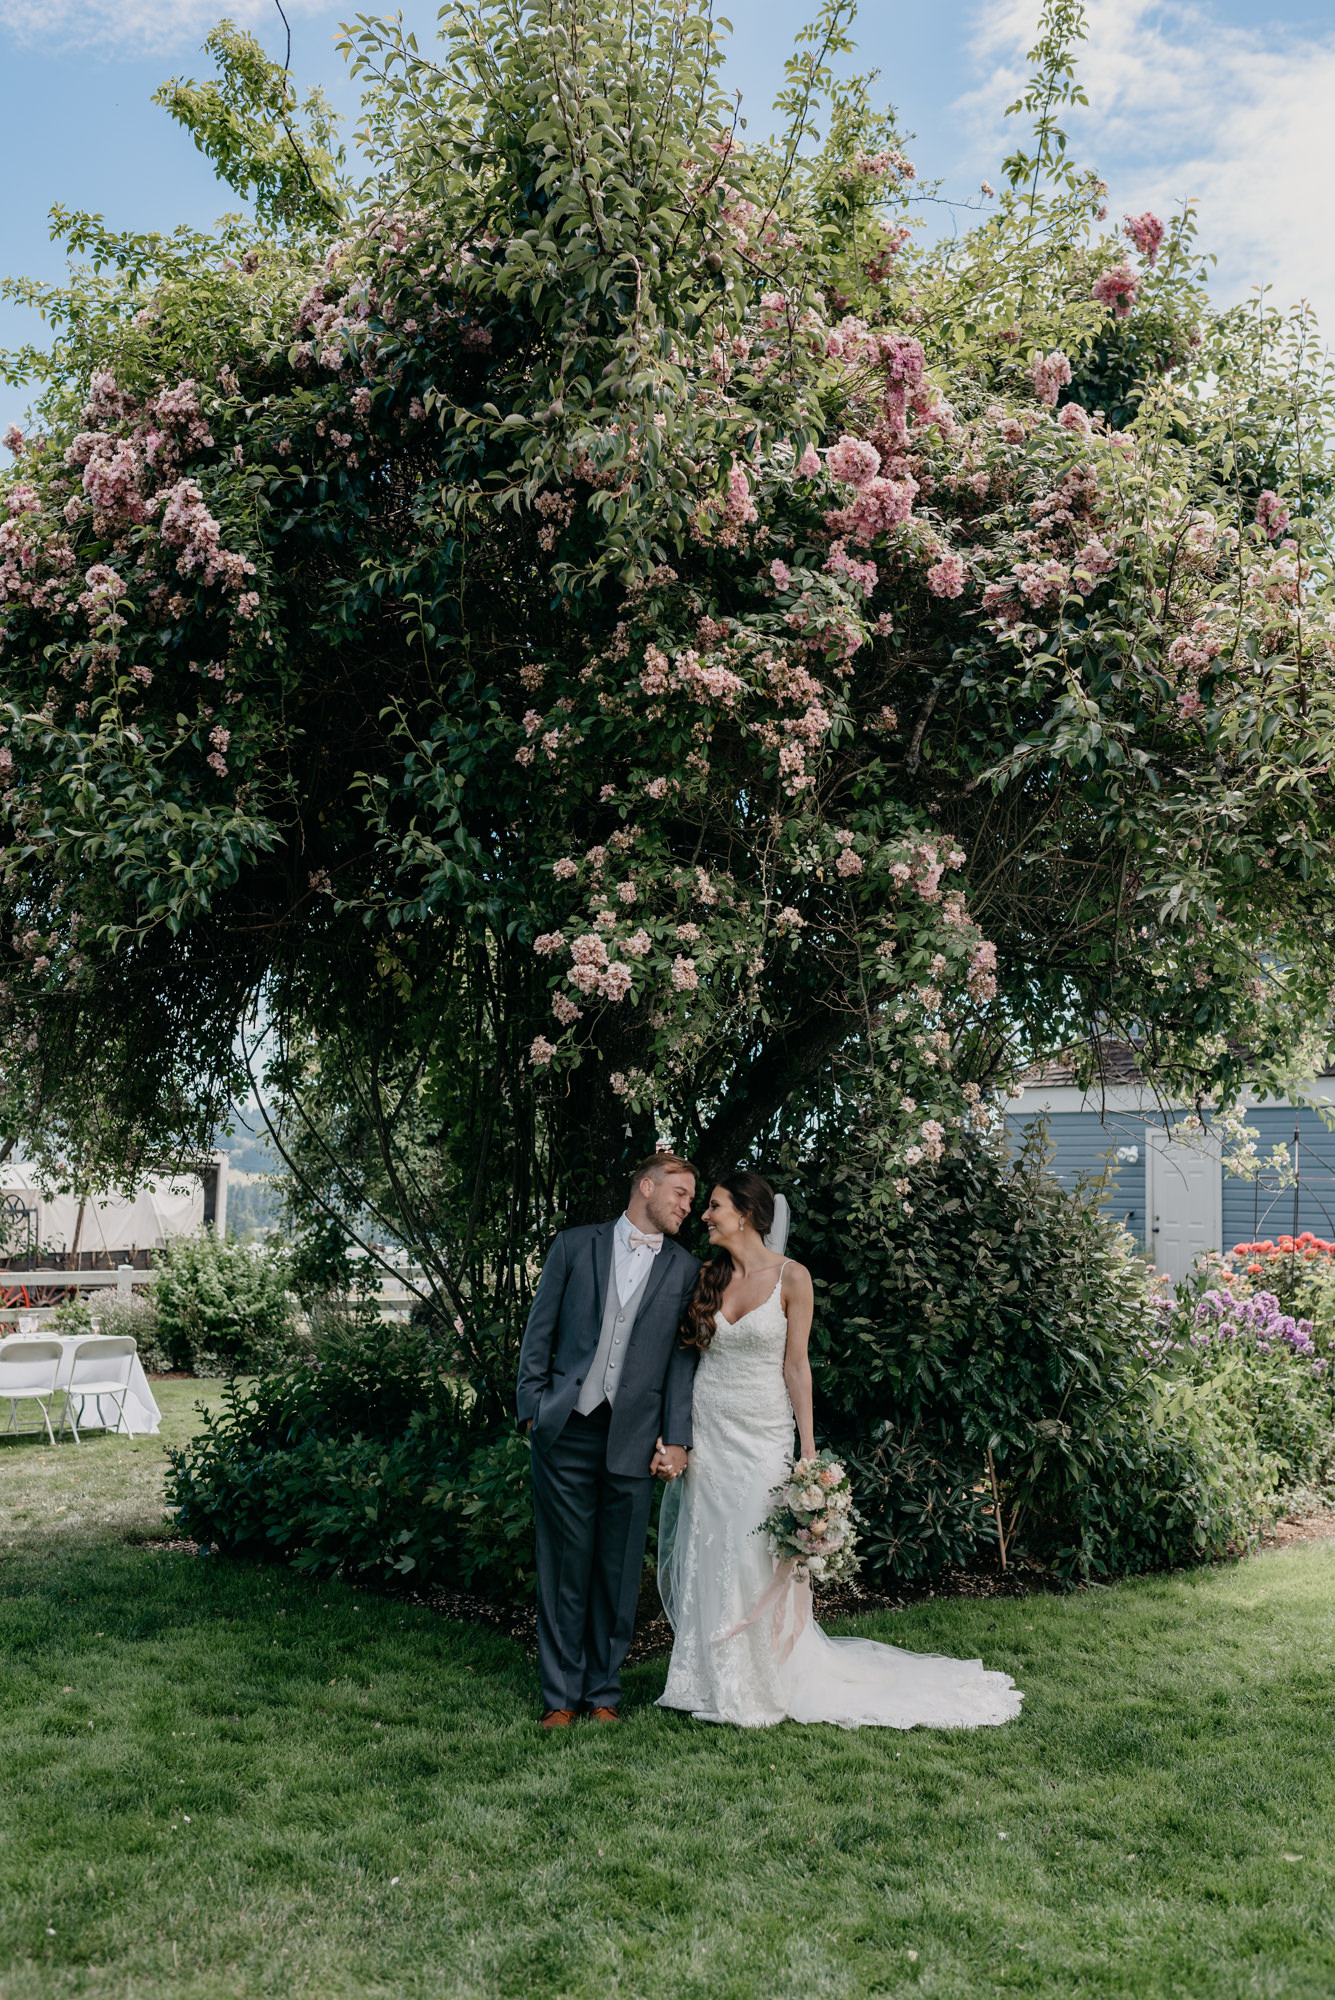 84-lake-oswego-wedding-portland-couple-rose-tree.jpg